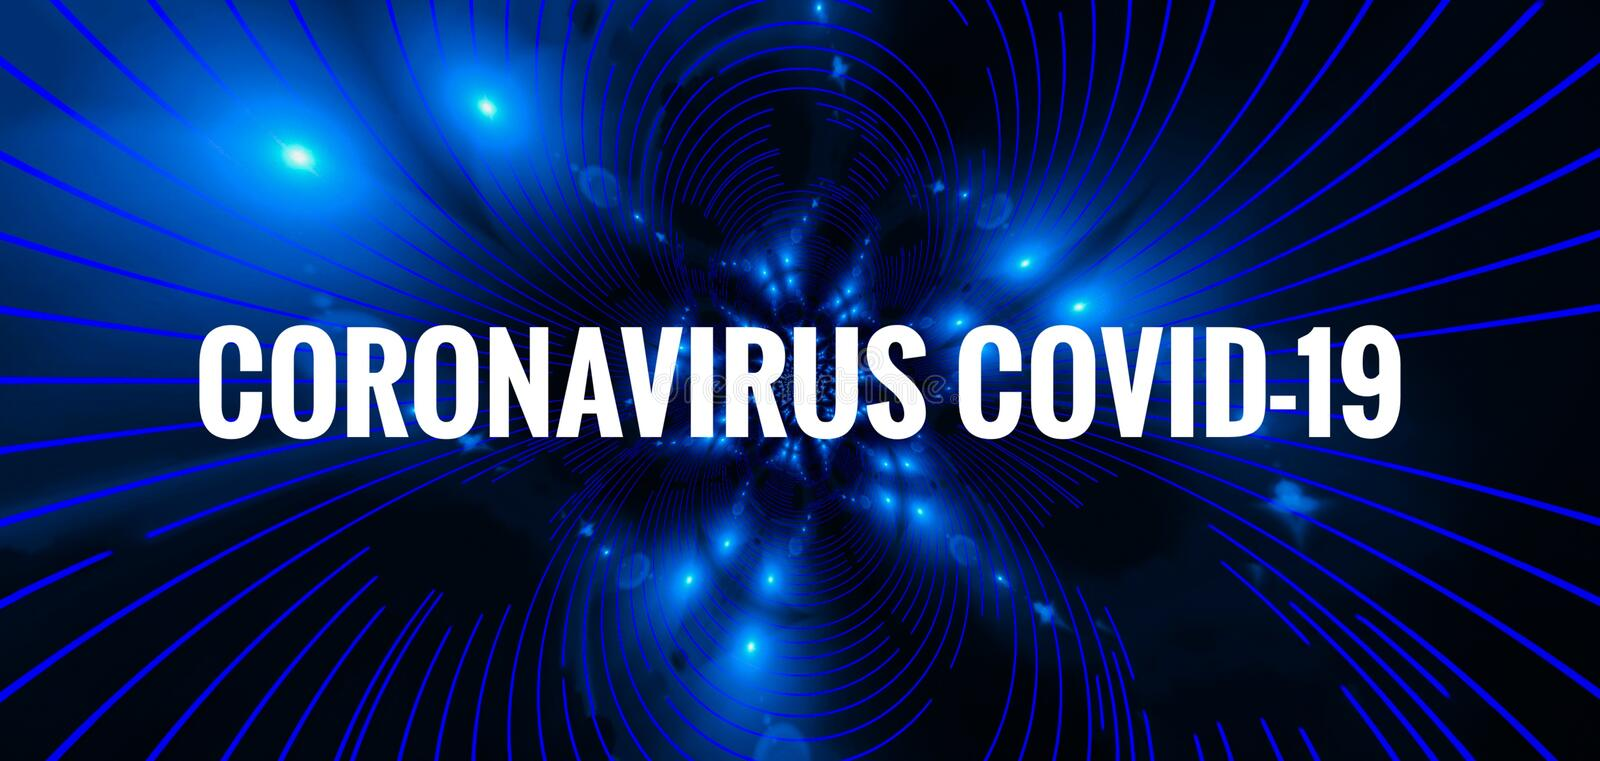 Virus Outbreak Covid-19 Header Background royalty free stock photo